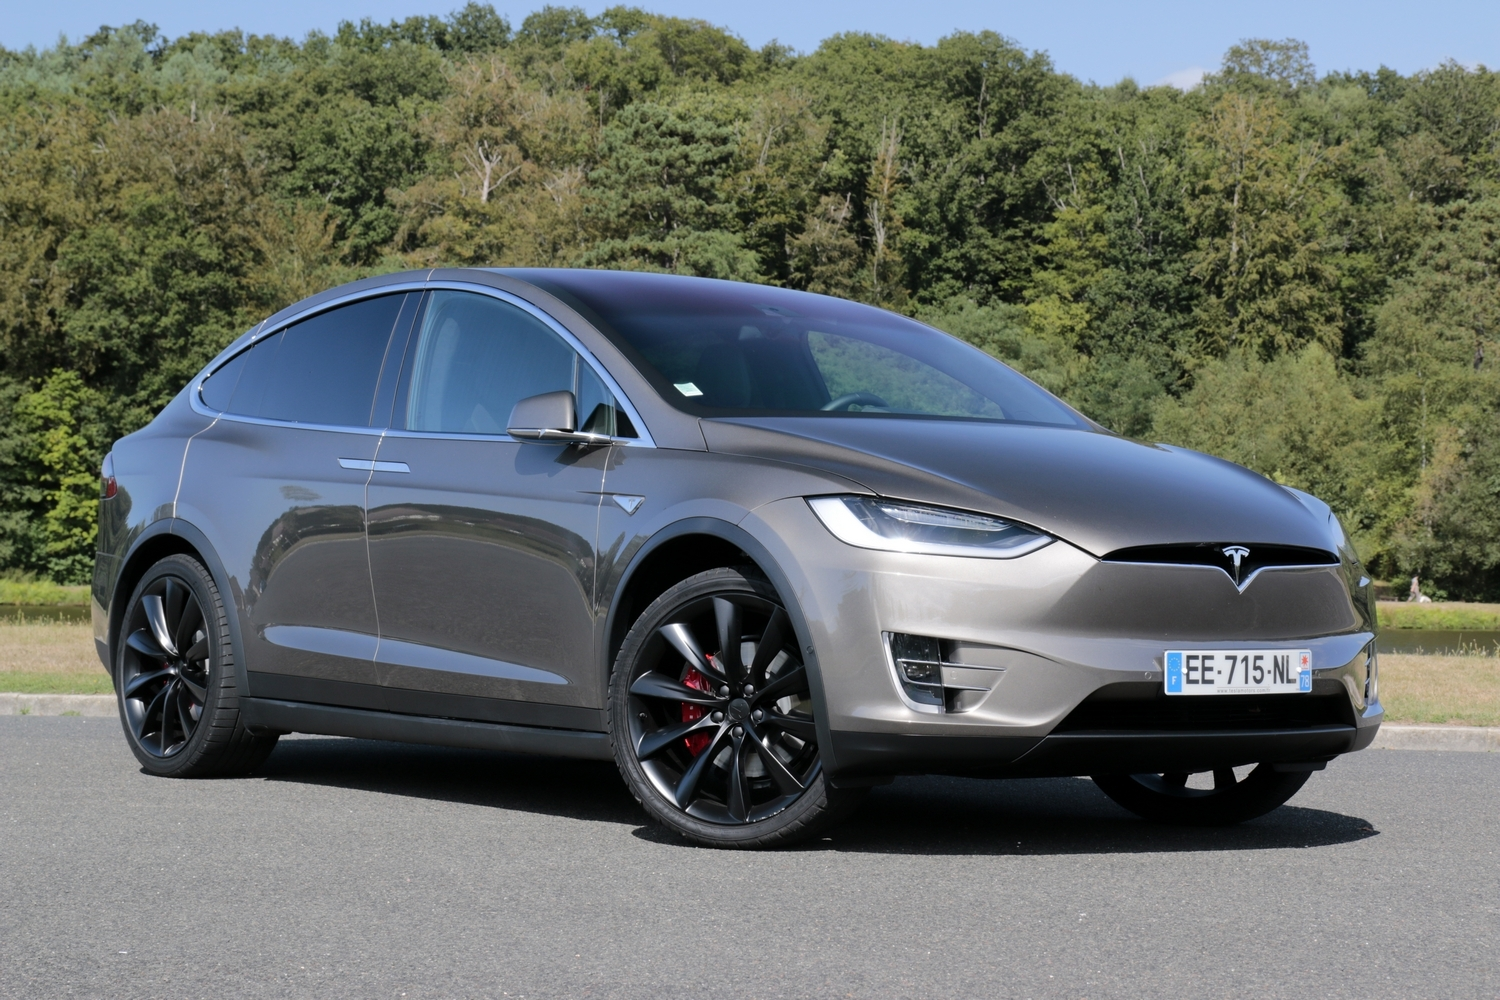 tesla 4x4 prix la tesla model s 4x4 nommee p85d tesla model x infos sur le prix et la. Black Bedroom Furniture Sets. Home Design Ideas